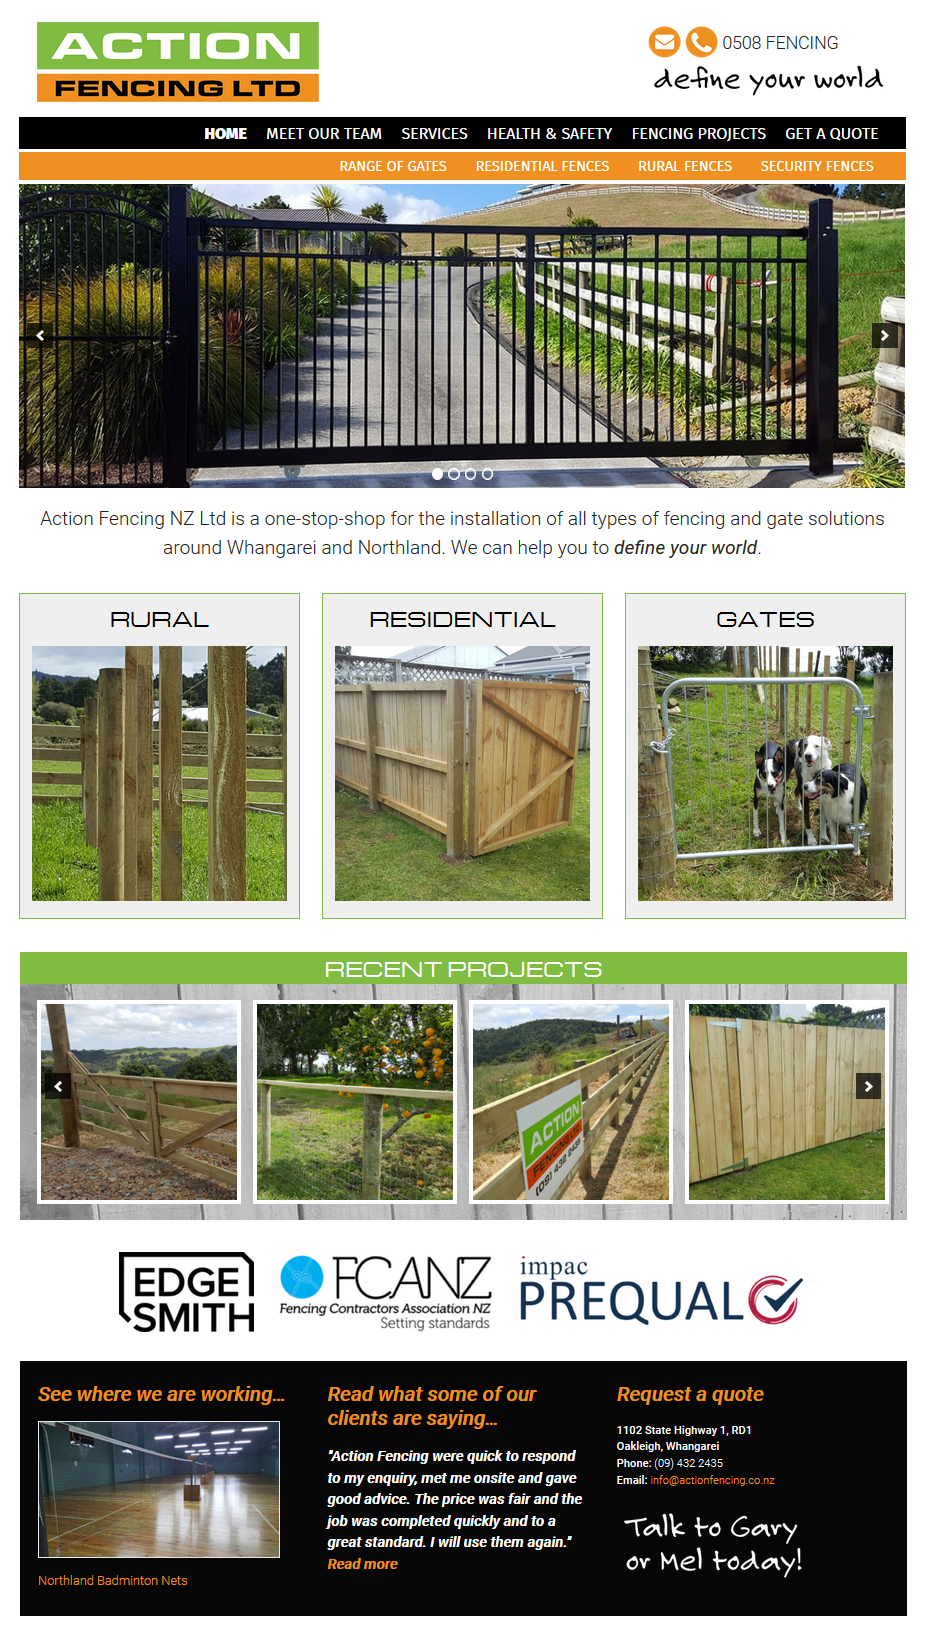 Action Fencing website design